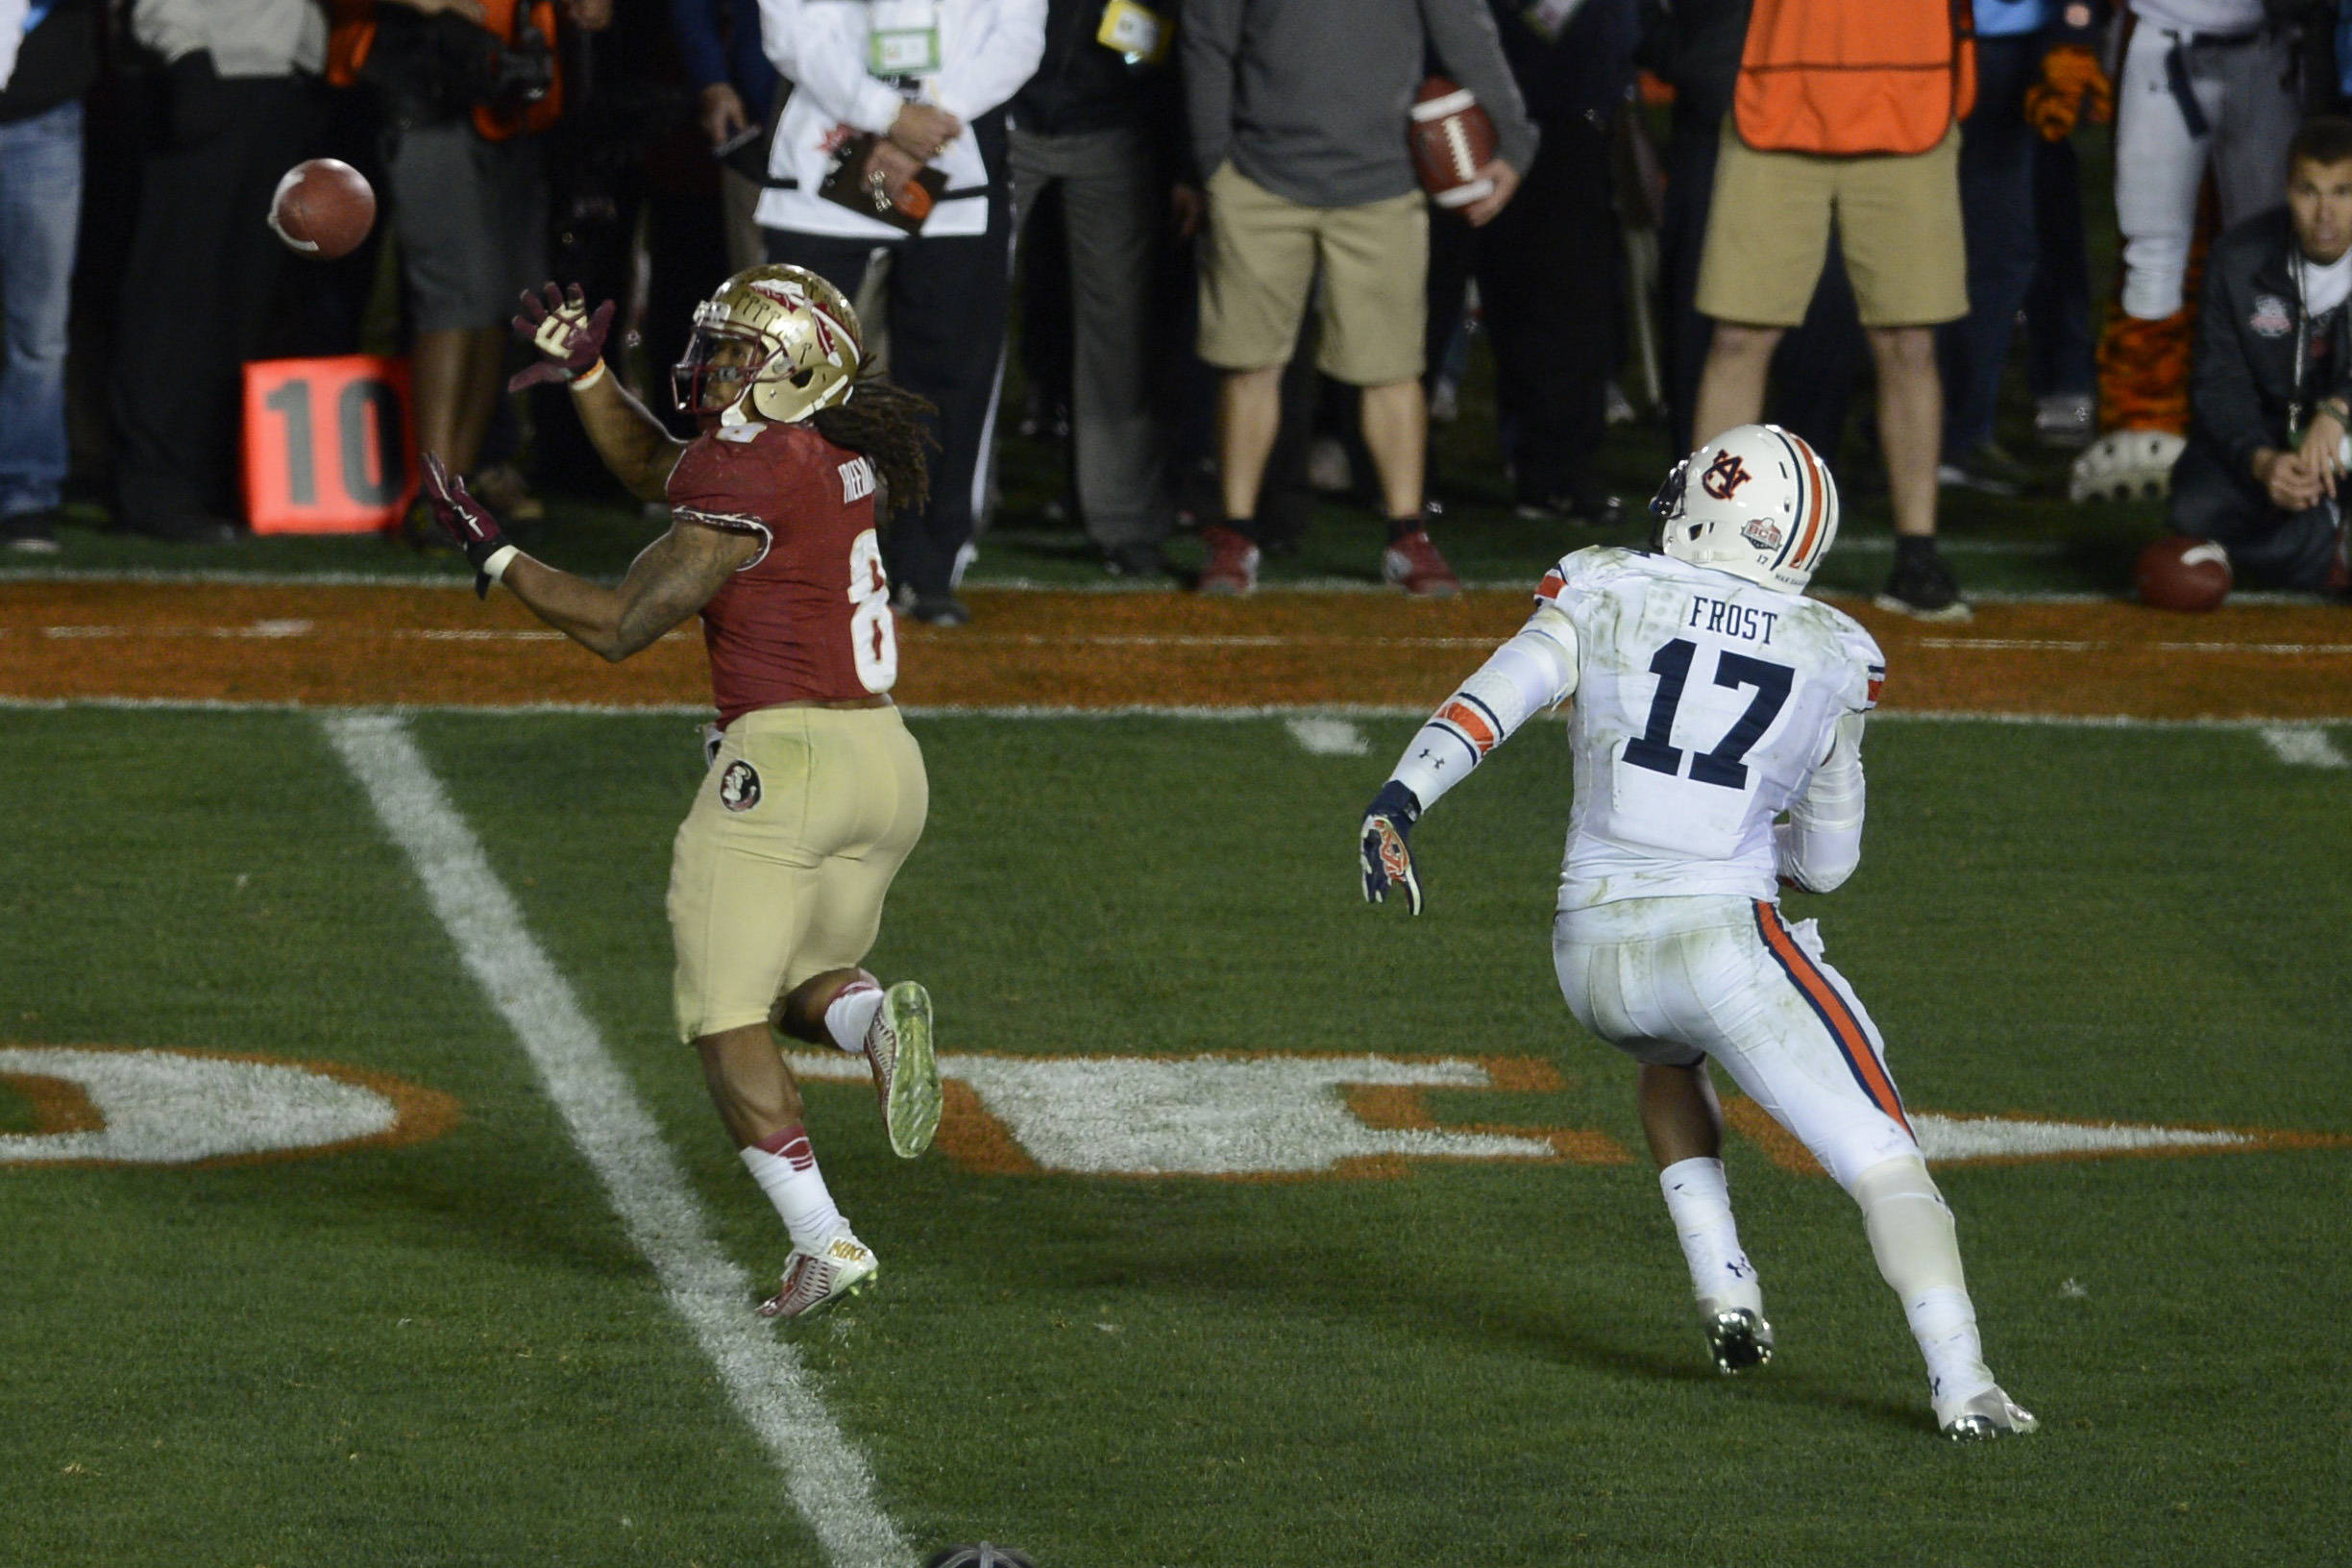 Jan 6, 2014; Pasadena, CA, USA; Florida State Seminoles running back Devonta Freeman (8) catches a pass against Auburn Tigers linebacker Kris Frost (17) during the second half of the 2014 BCS National Championship game at the Rose Bowl.  Mandatory Credit: Kelvin Kuo-USA TODAY Sports